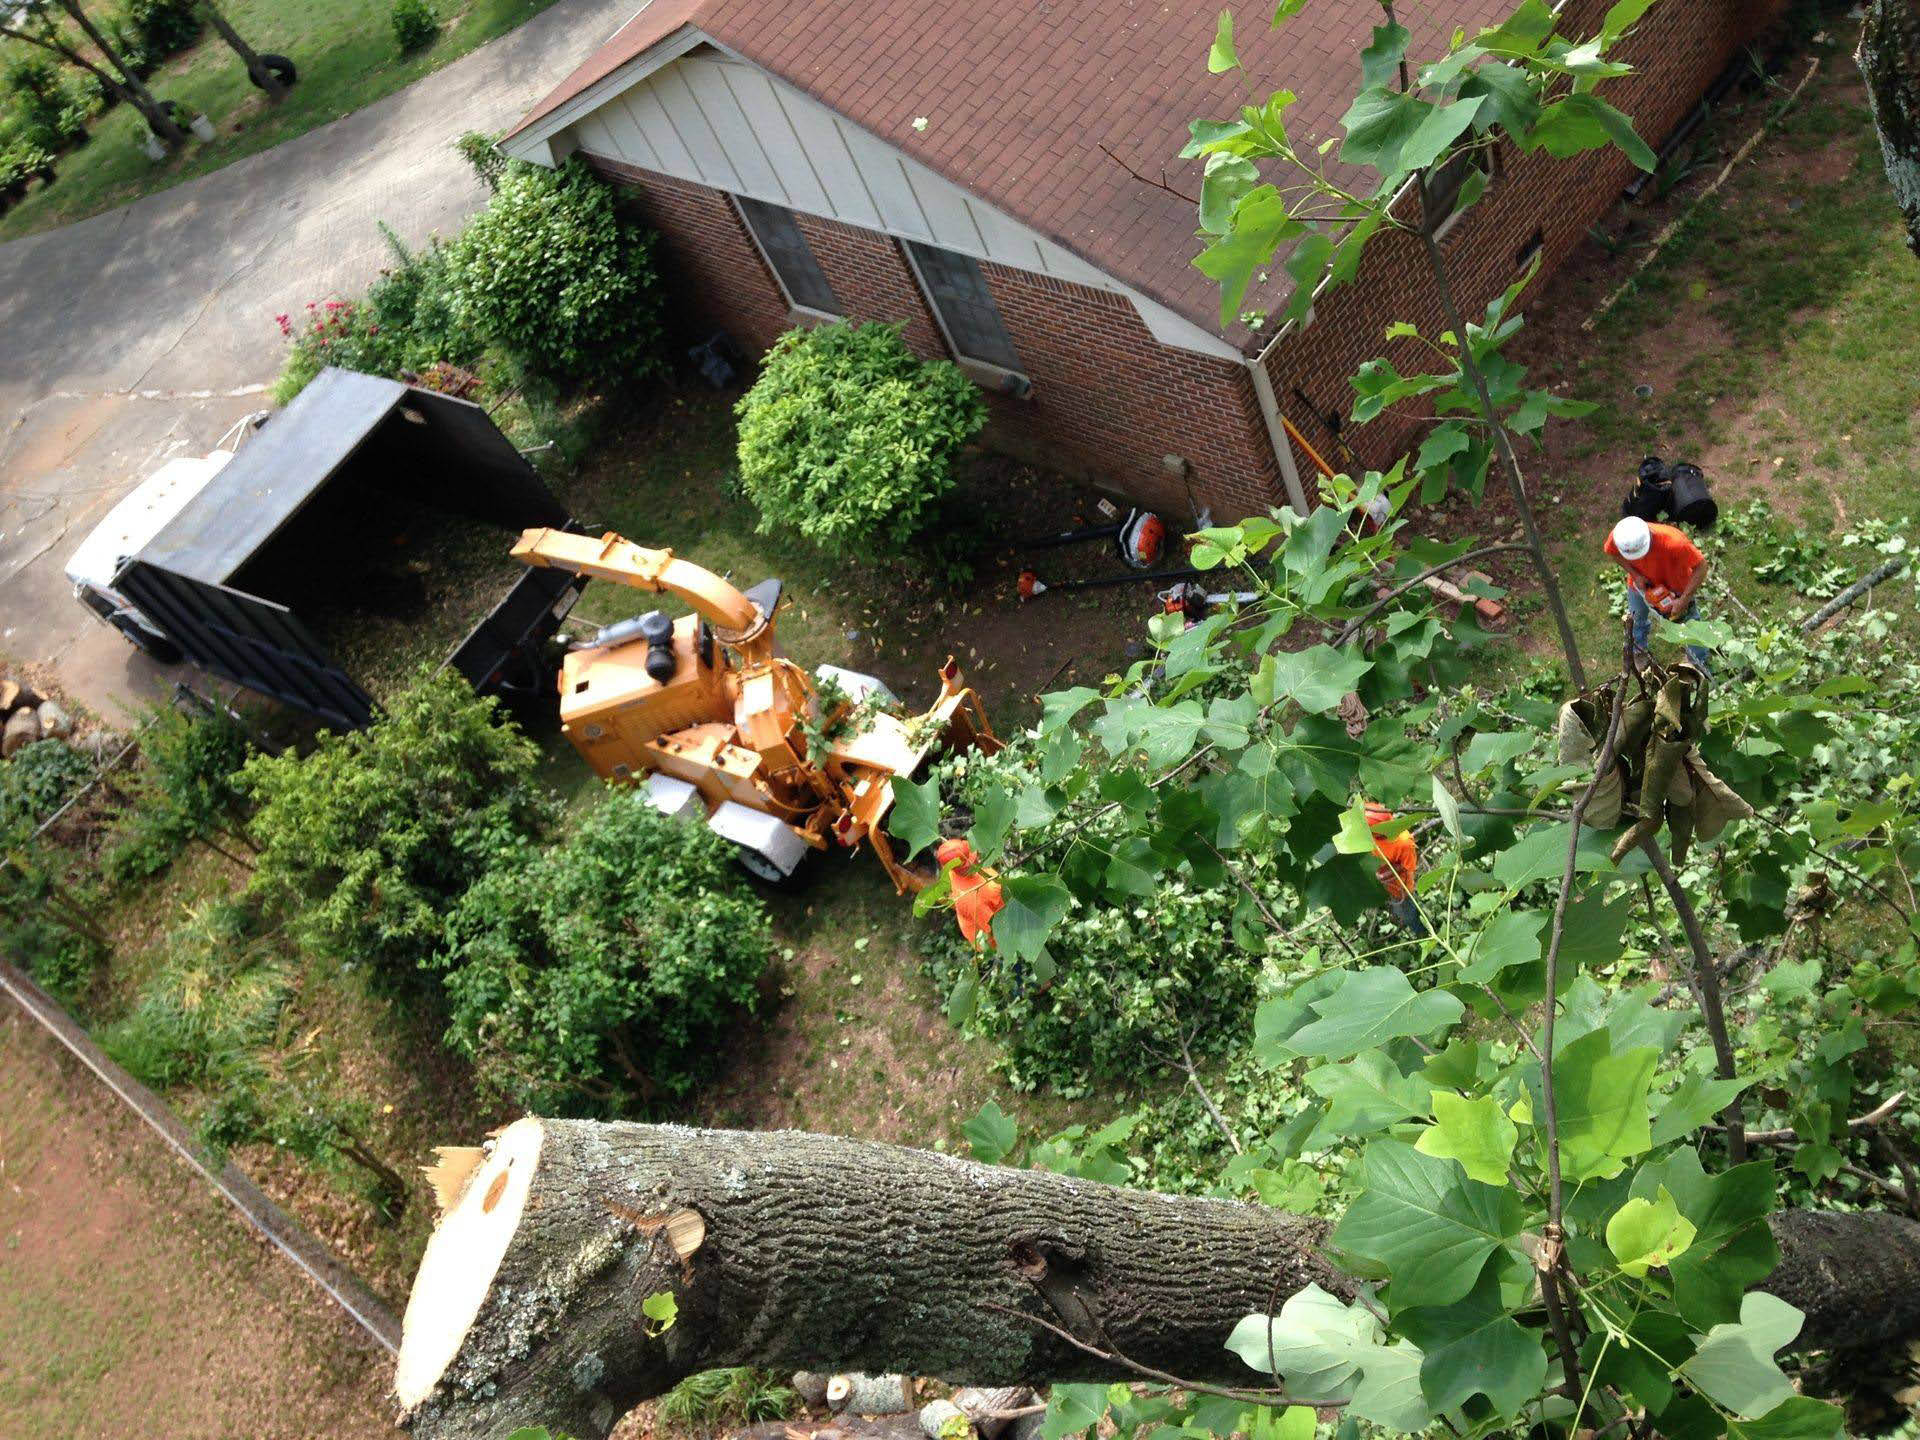 Stump removal, tree services by certified arborist and groundsmen